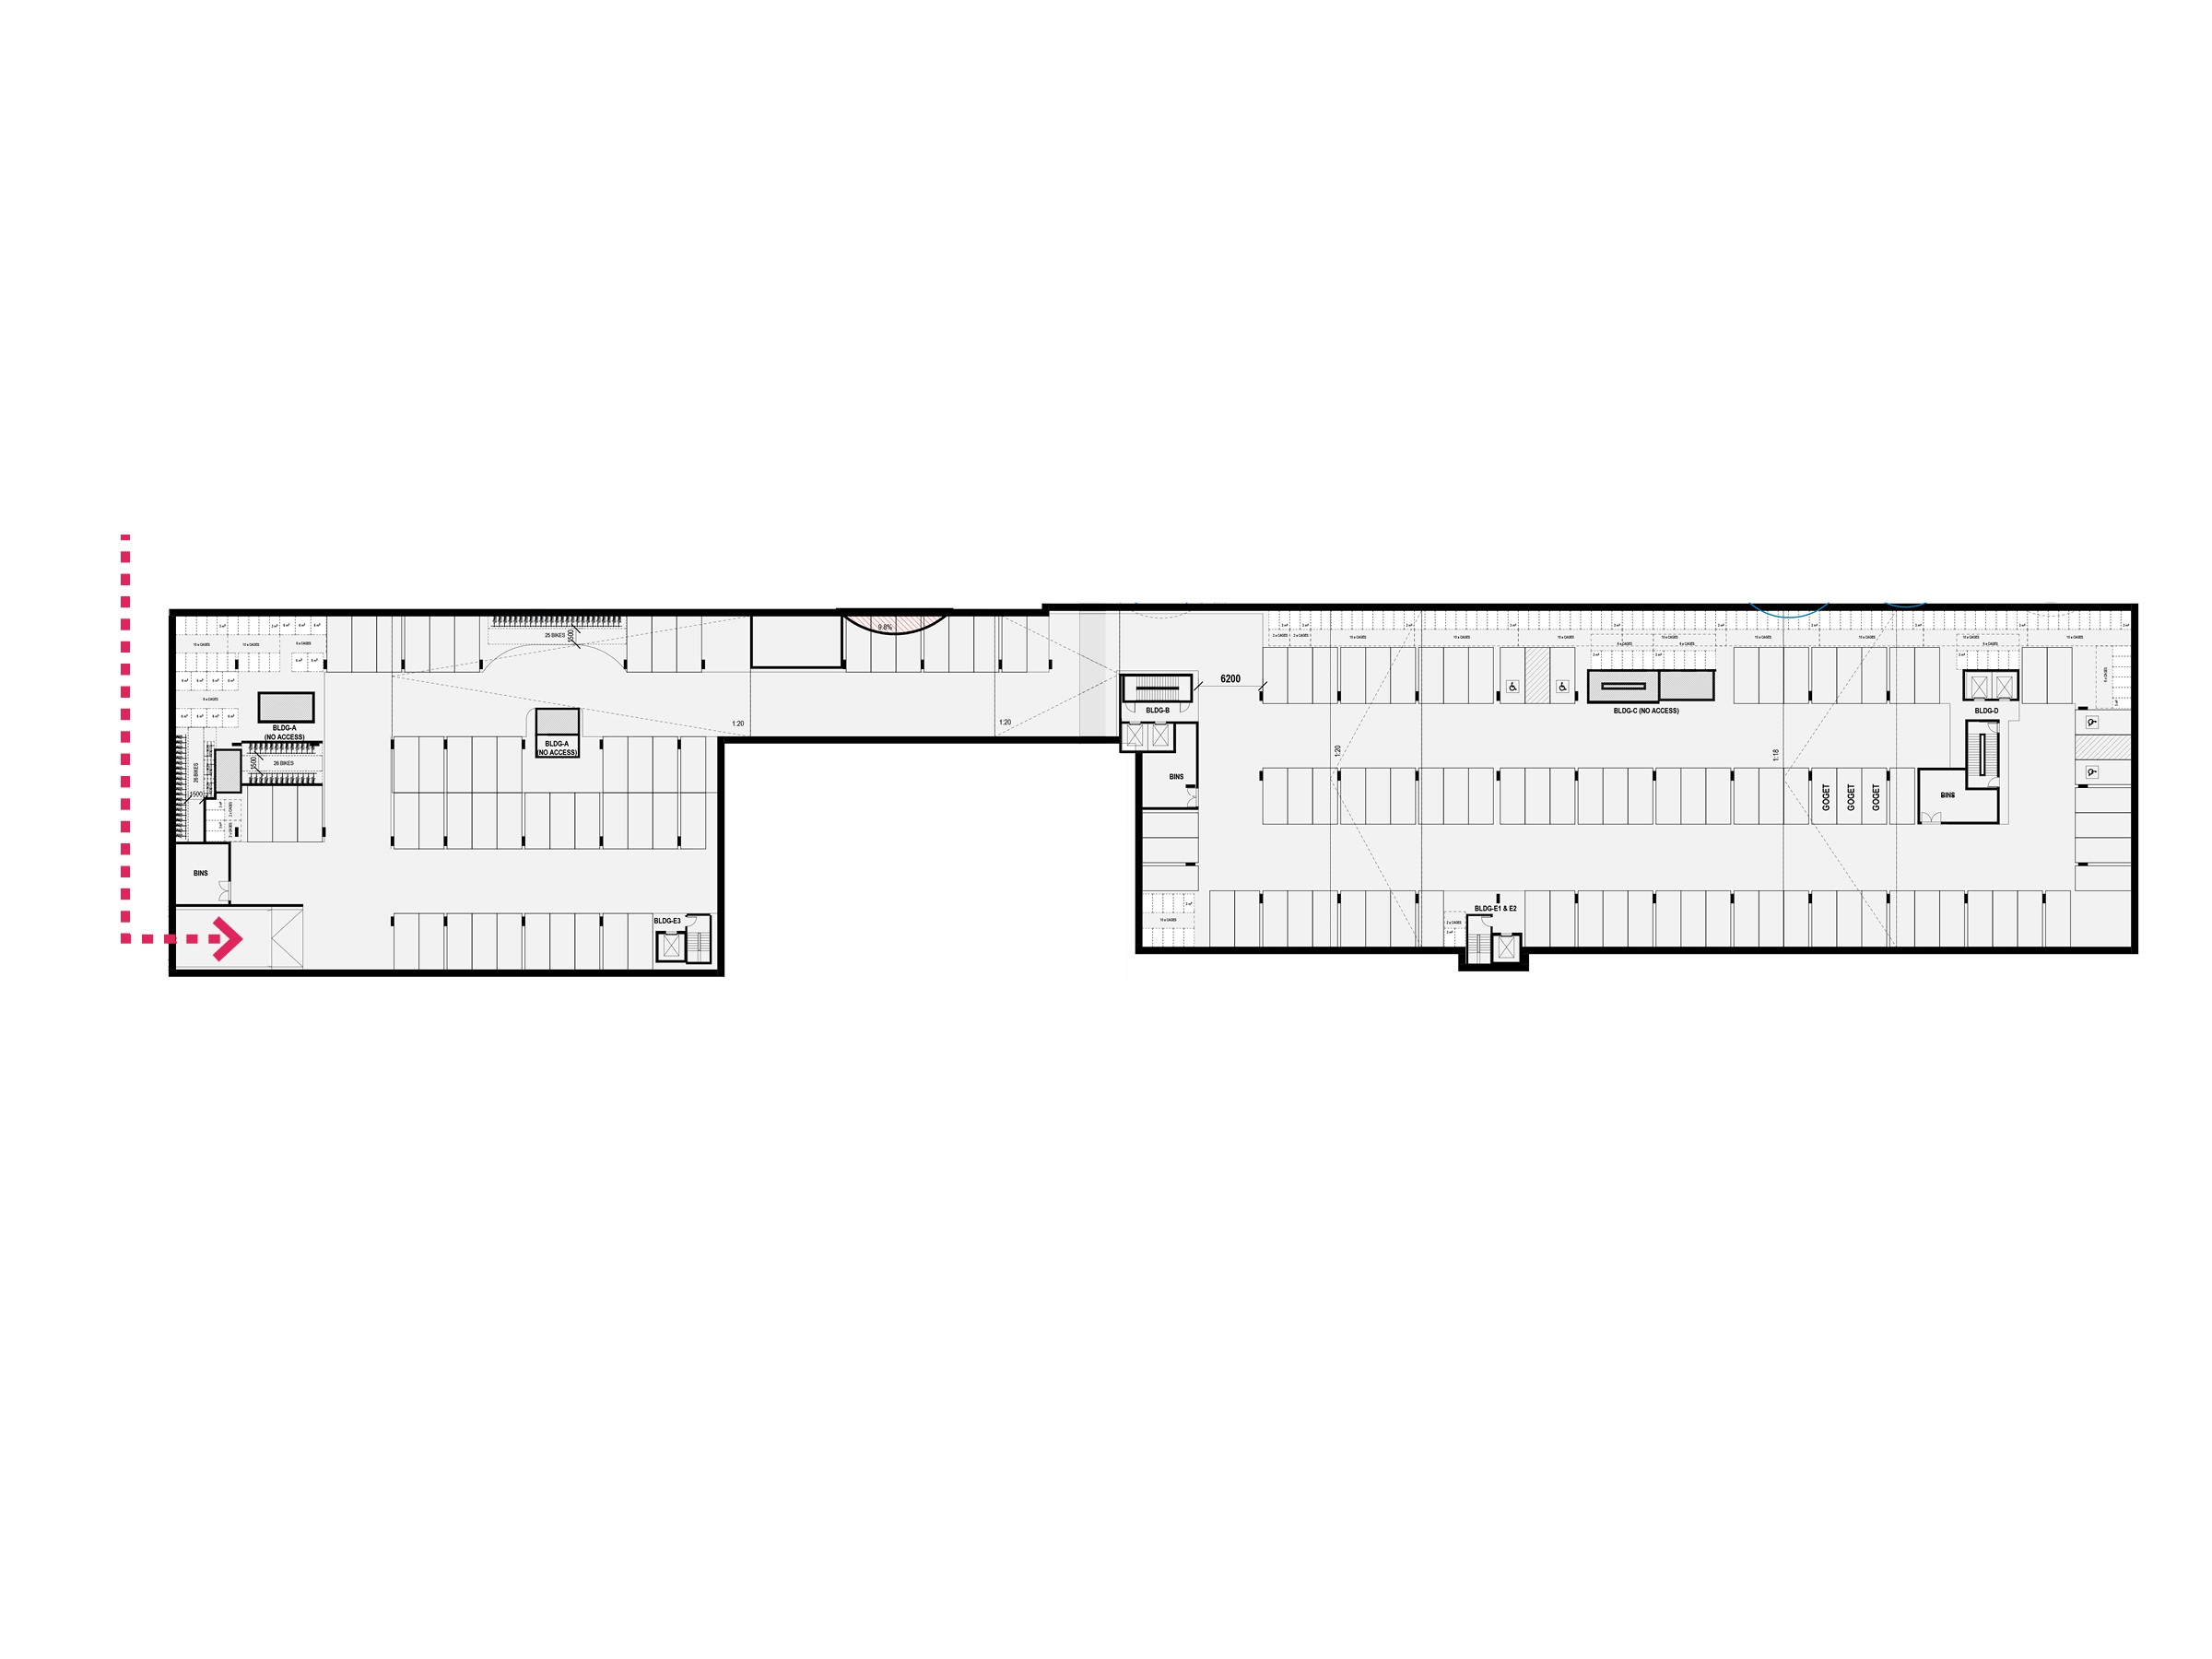 Diagram showing the parking facilities on basement level 2